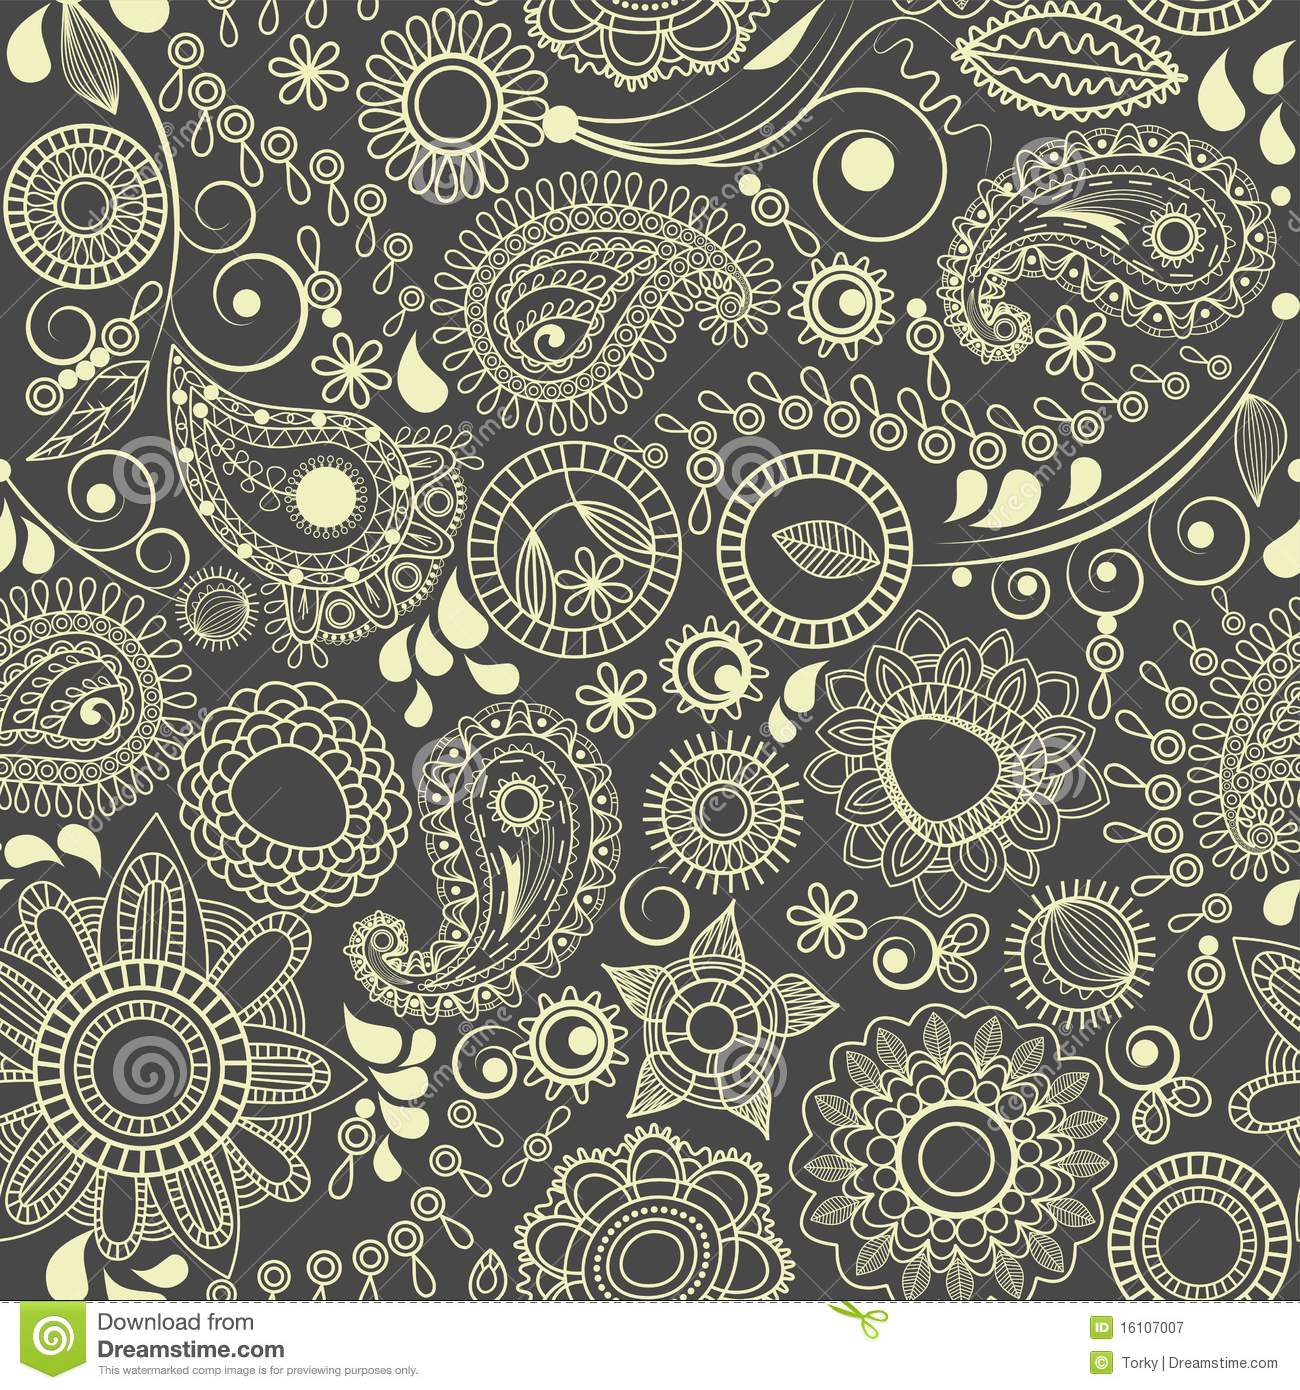 Paisley Floral Seamless Background Stock Vector ...